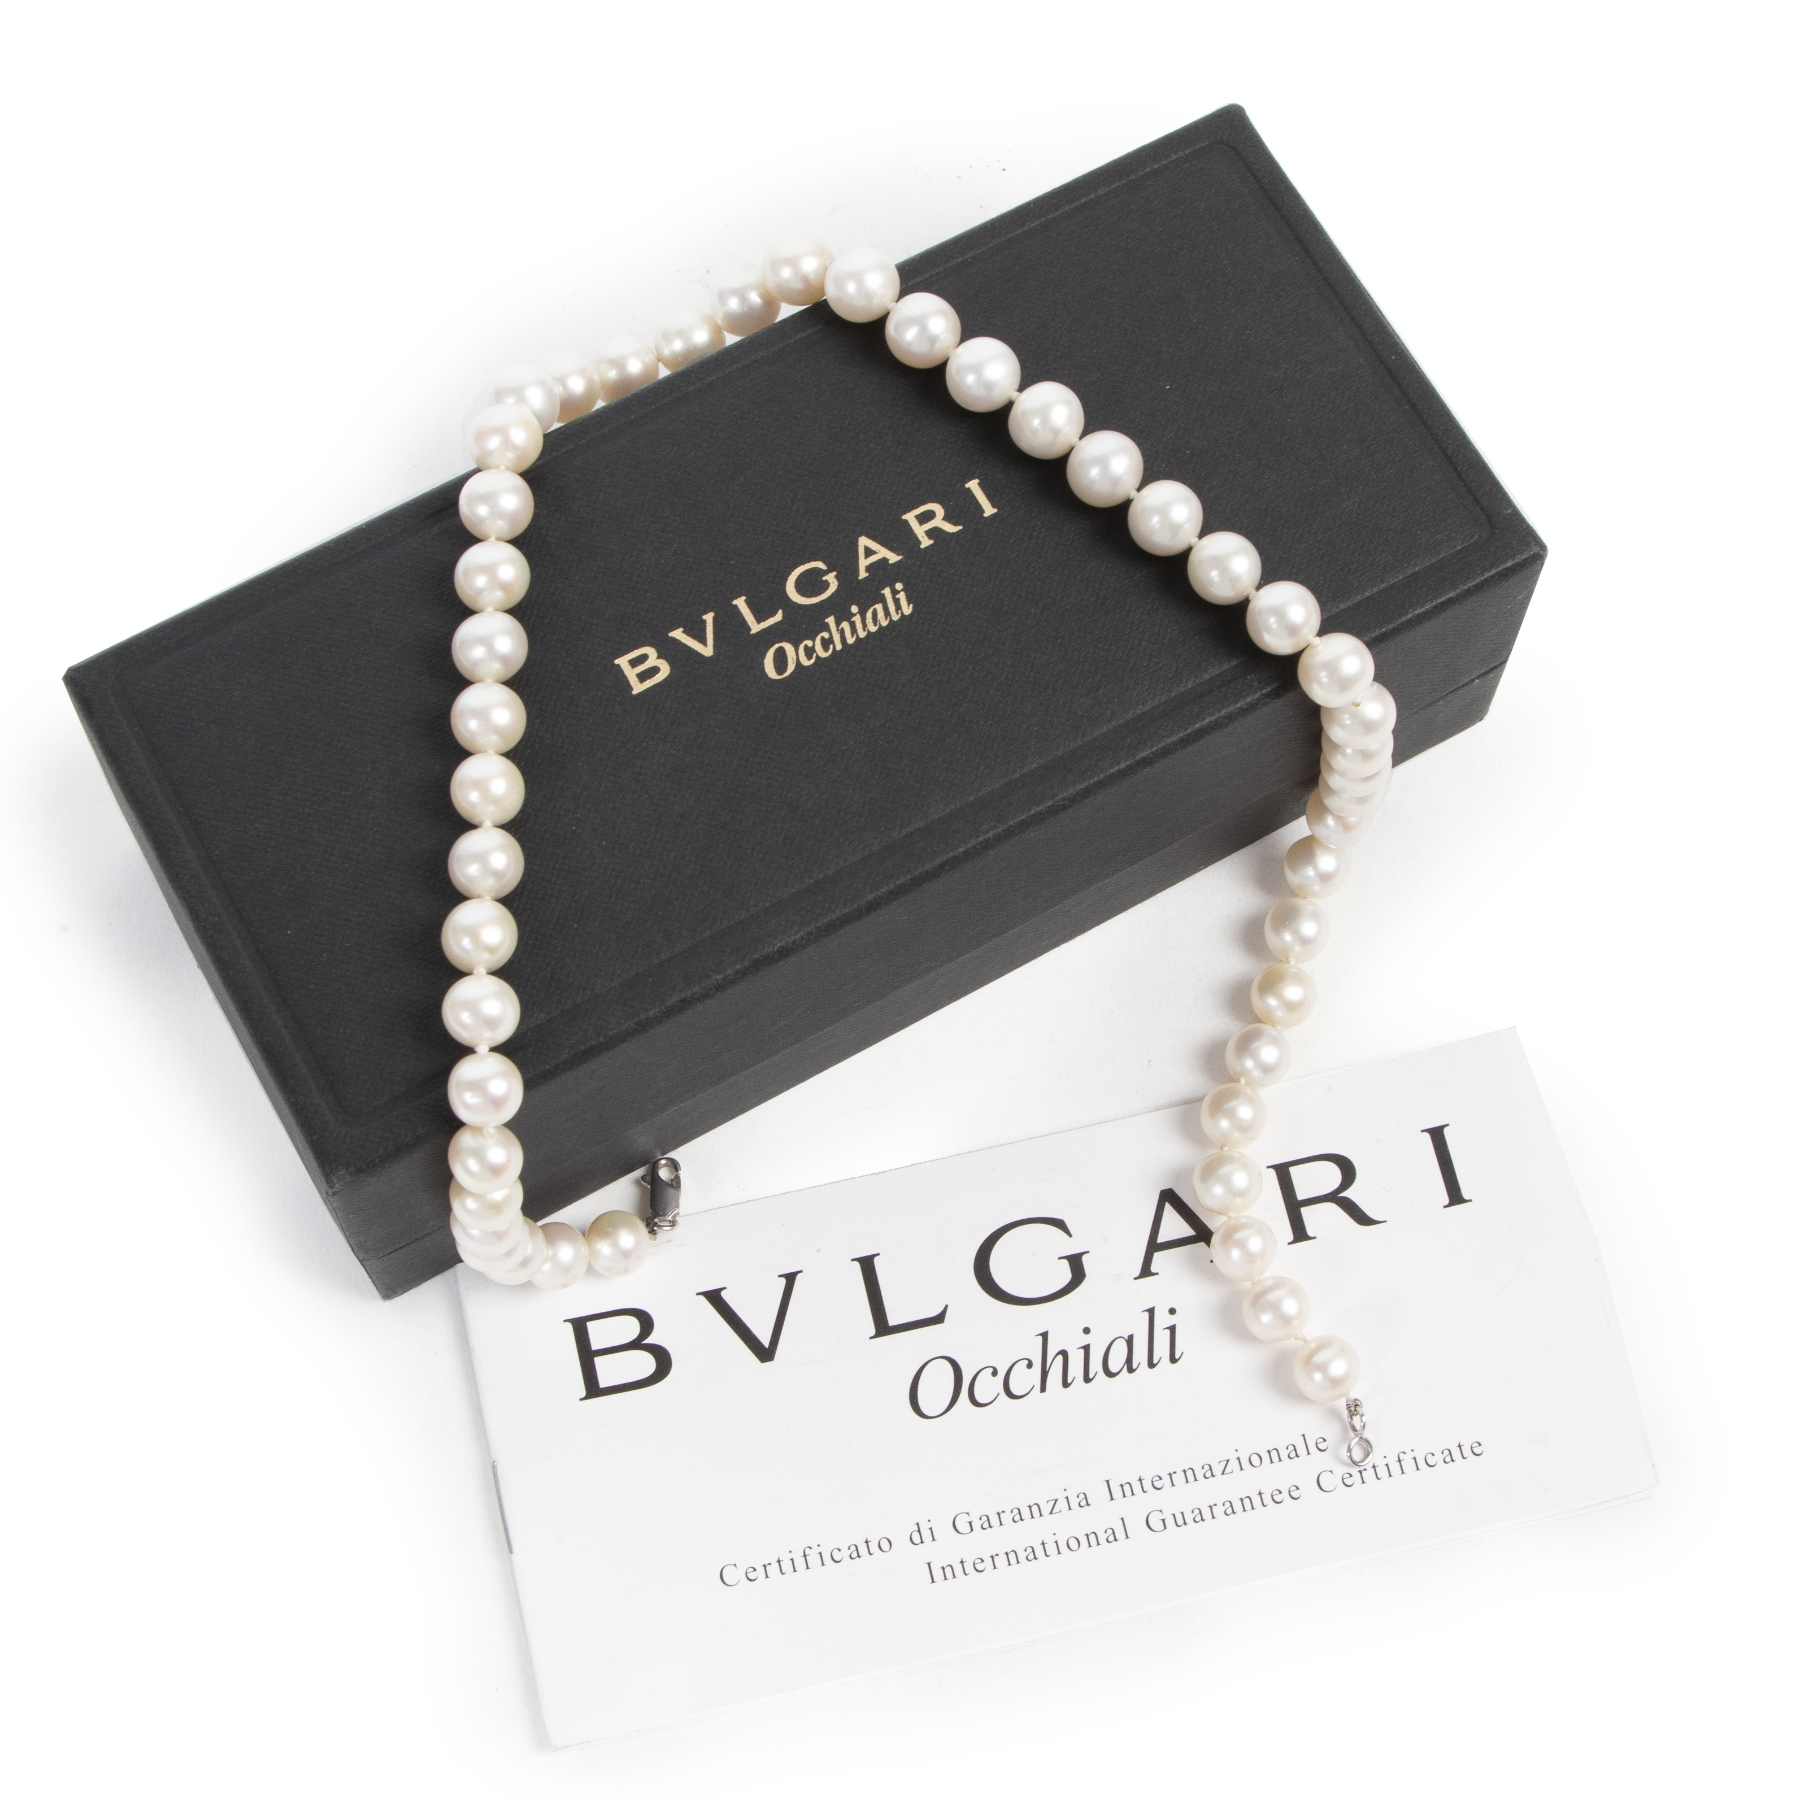 Authentic secondhand Bulgari White Pearl Necklace designer accessories jewelry fashion luxury vintage webshop safe secure online shopping